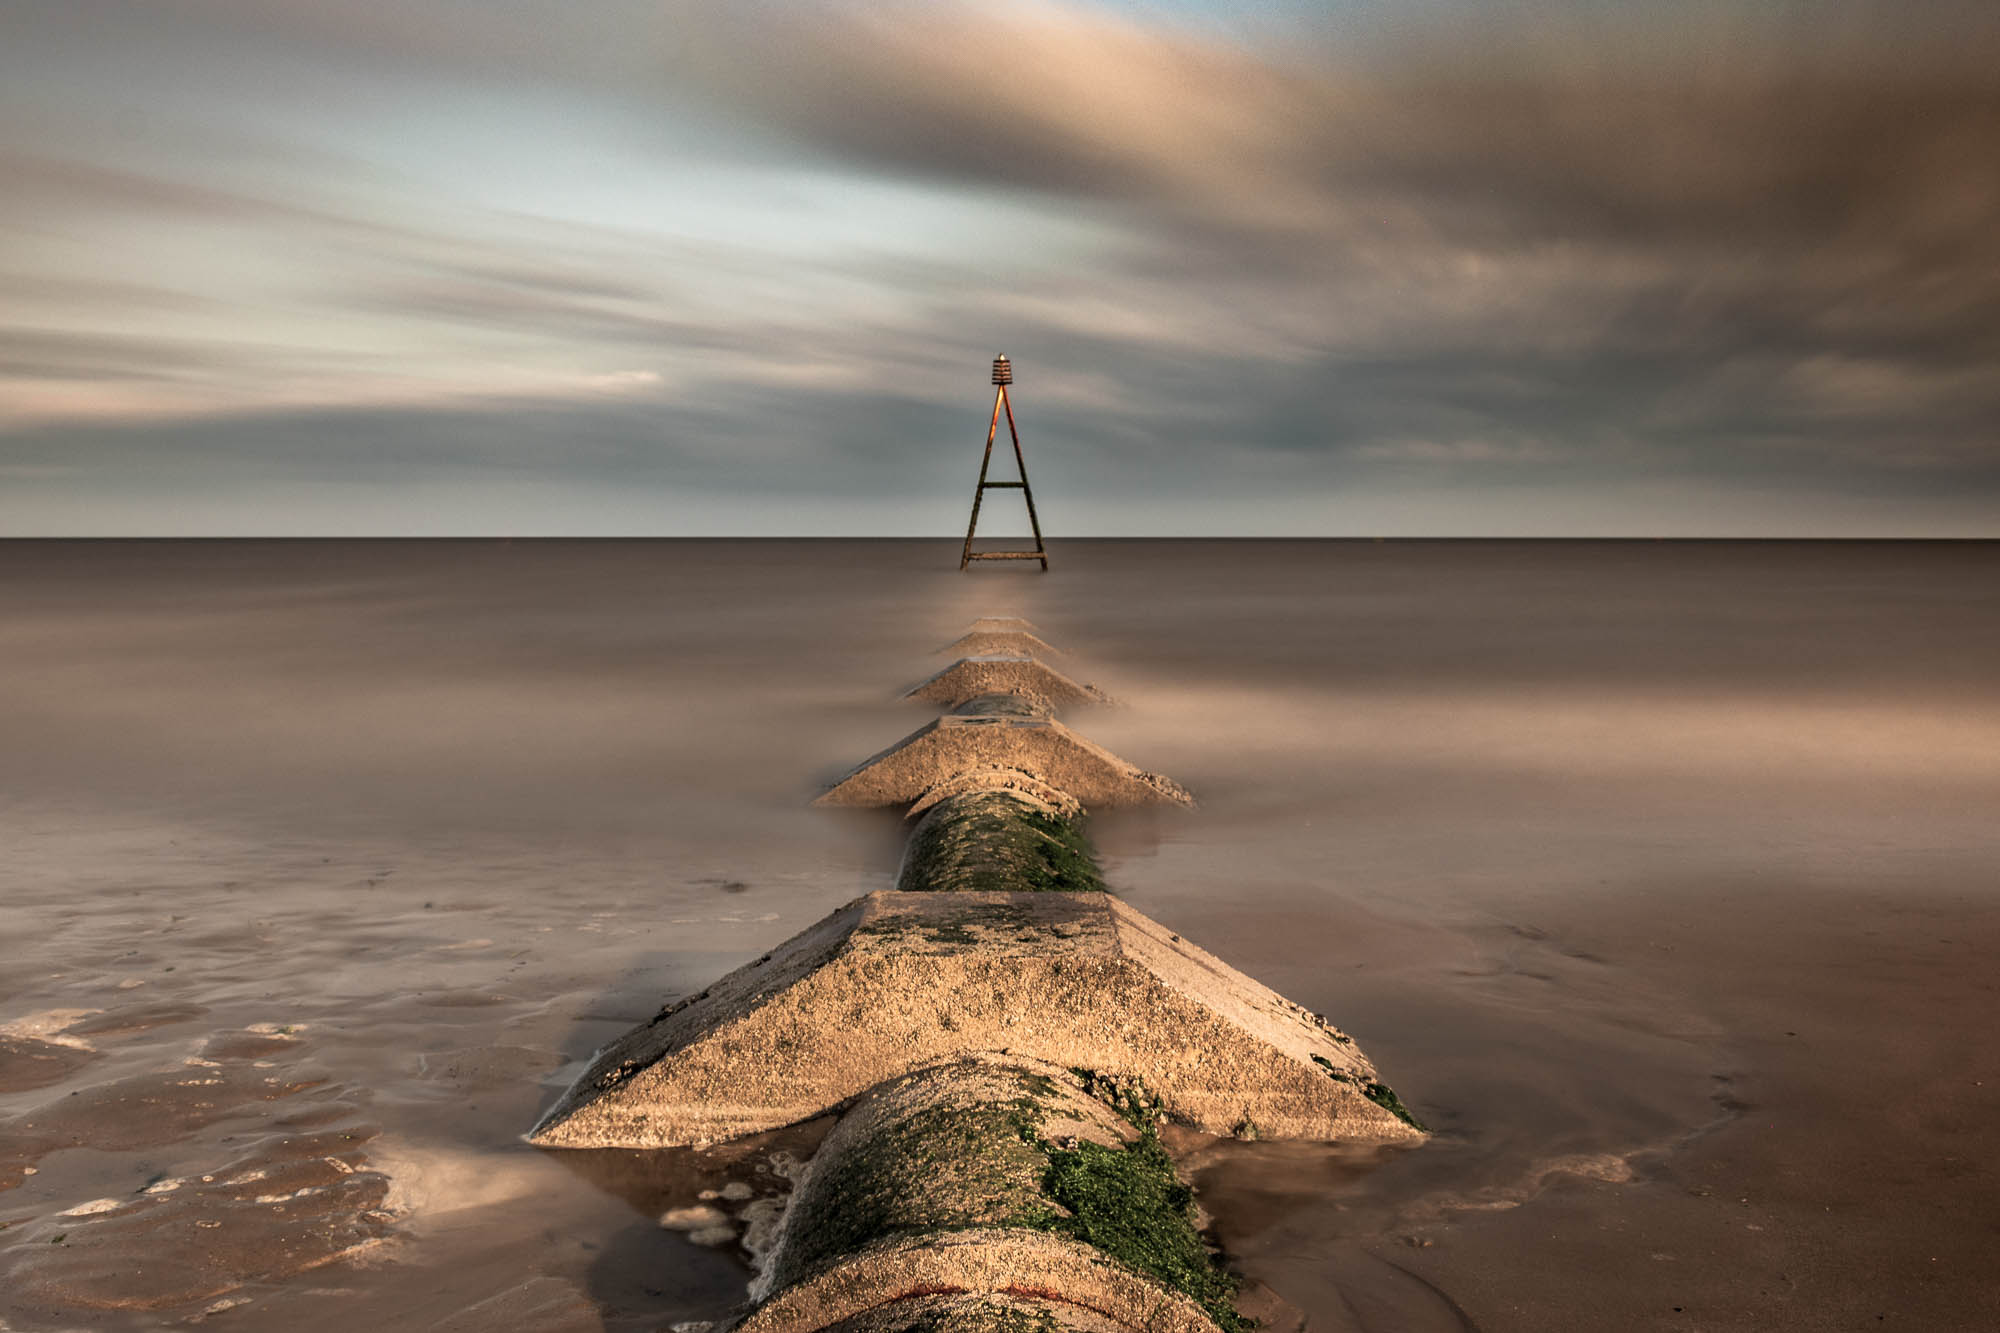 An early morning photo of a waste pipe heading out to sea at Hunstanton, England.